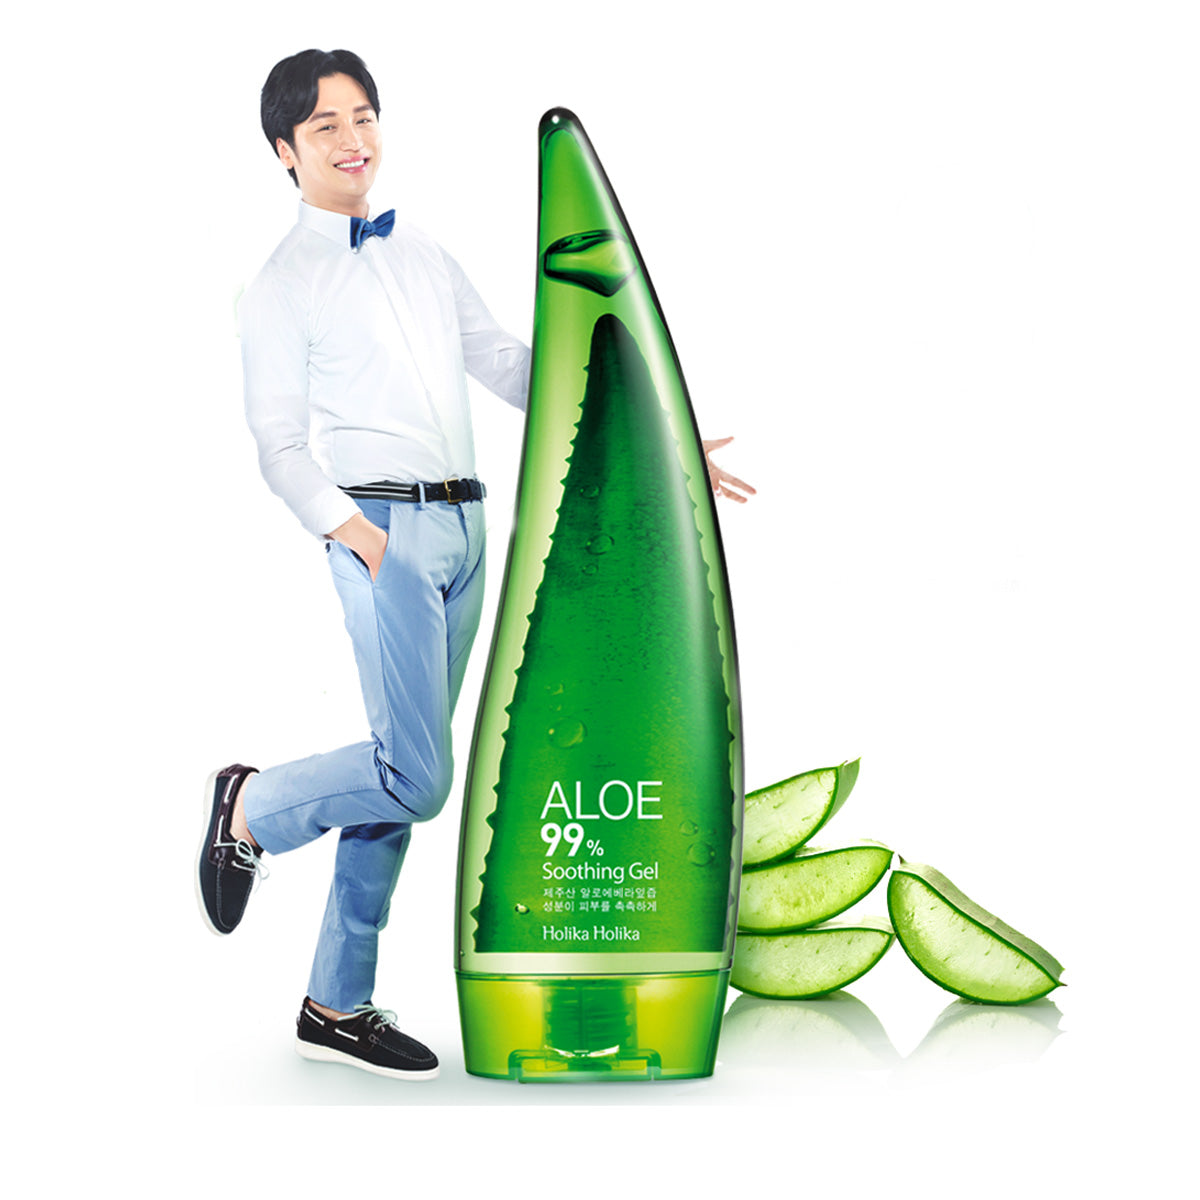 Aloe Vera Soothing Gel⭐[Holika Holika] 99% 250ml⭐Welcos Kwailnara 98% 500ml⭐韓國原裝進口水果之鄉蘆薈膠 - Bluemoon Secrets Chamber